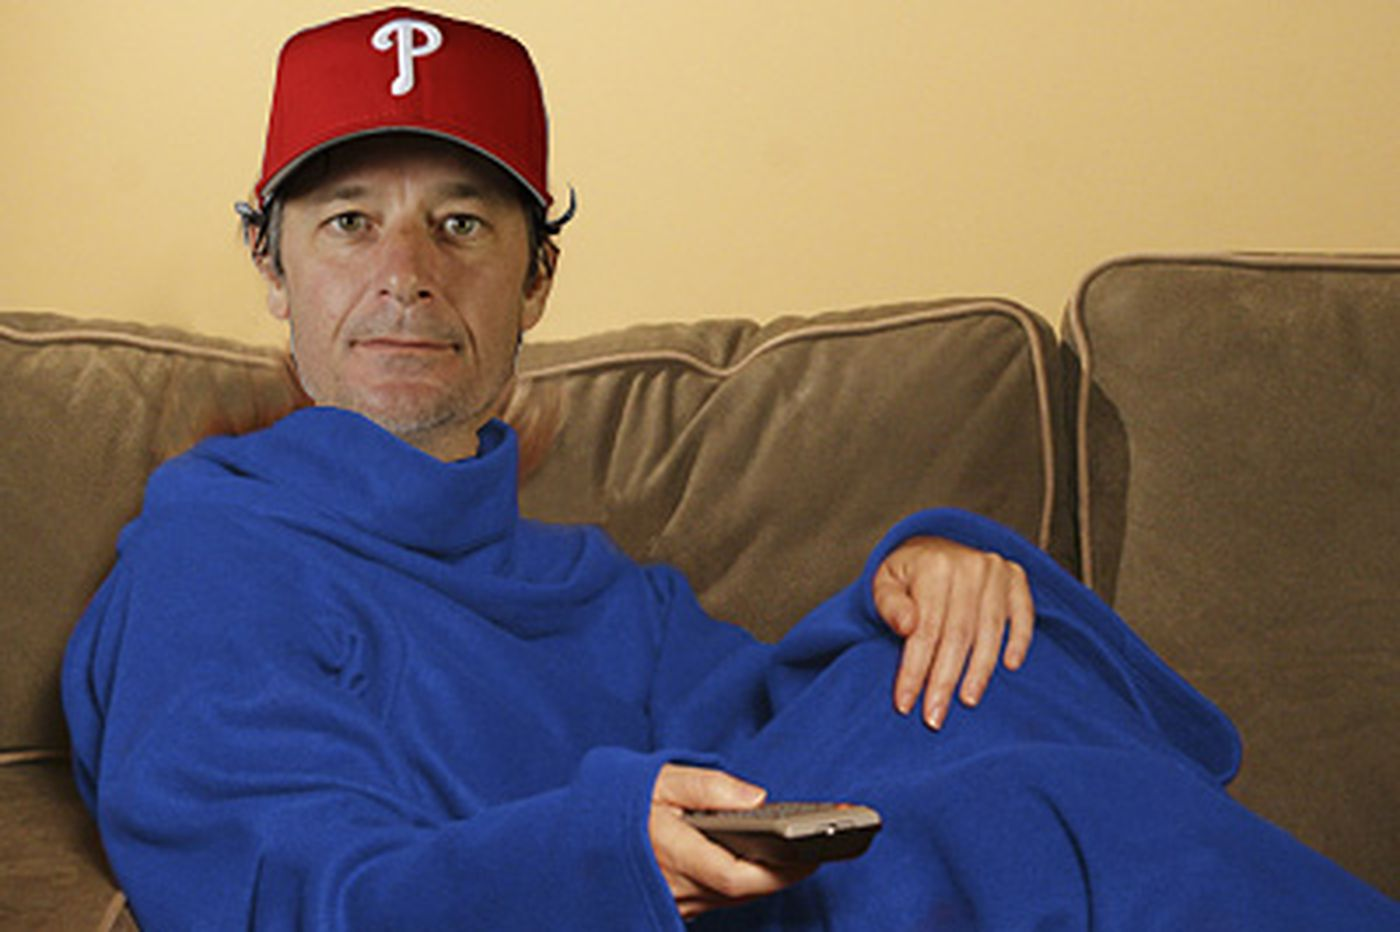 Gonzo: Marketing ideas, Philly sports division